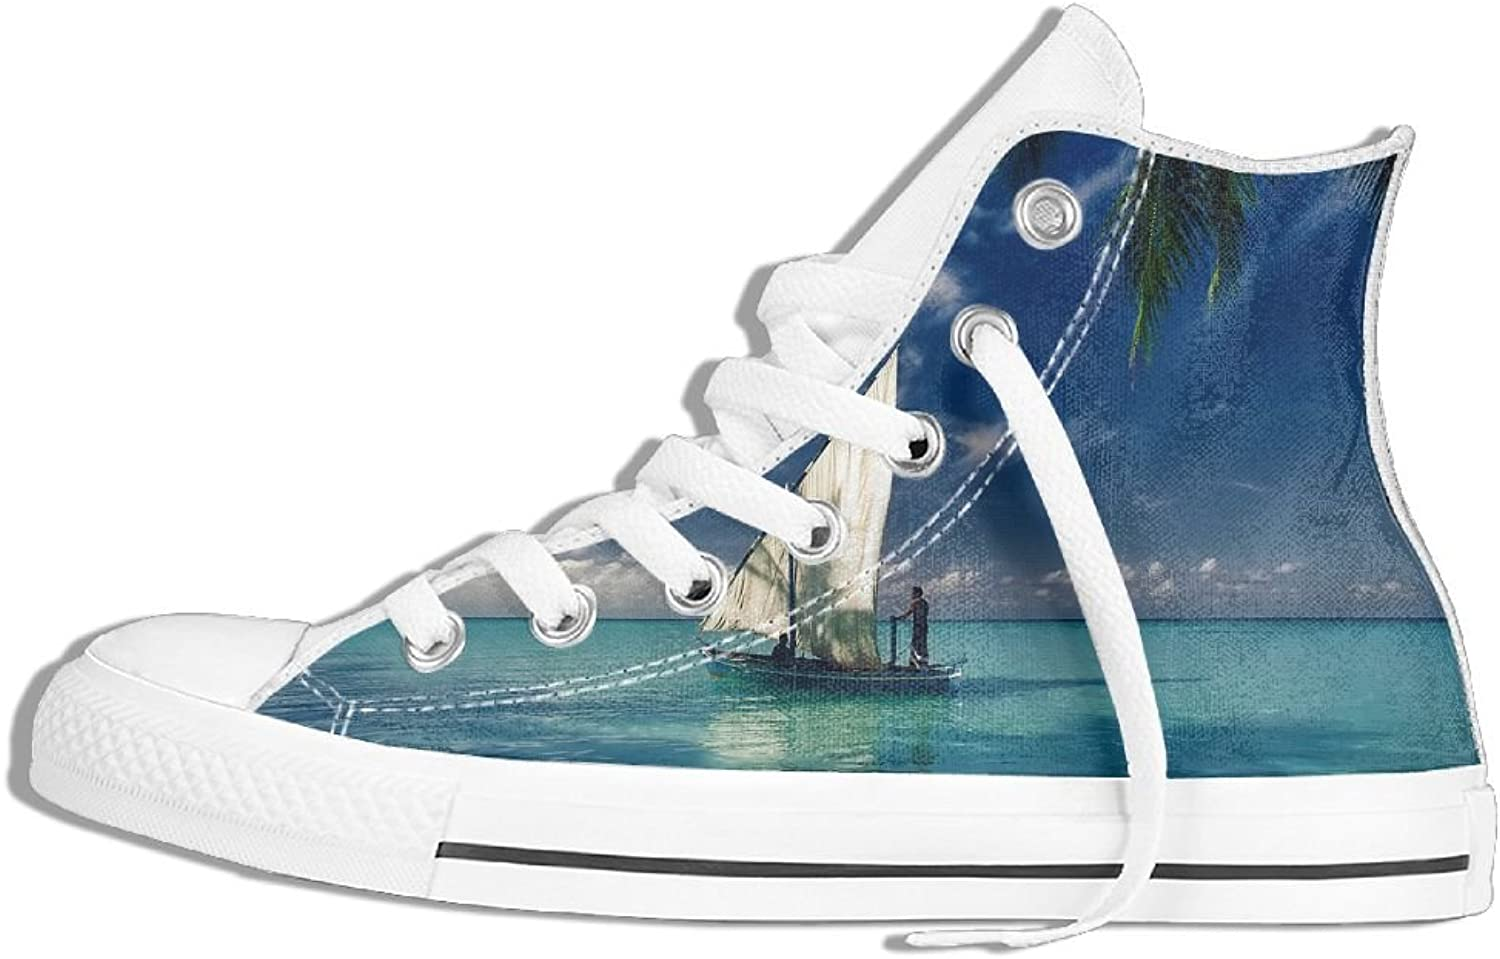 Unisex High Top Canvas Sneaker Sailboat Classic Lace Ups Canvas shoes For Women